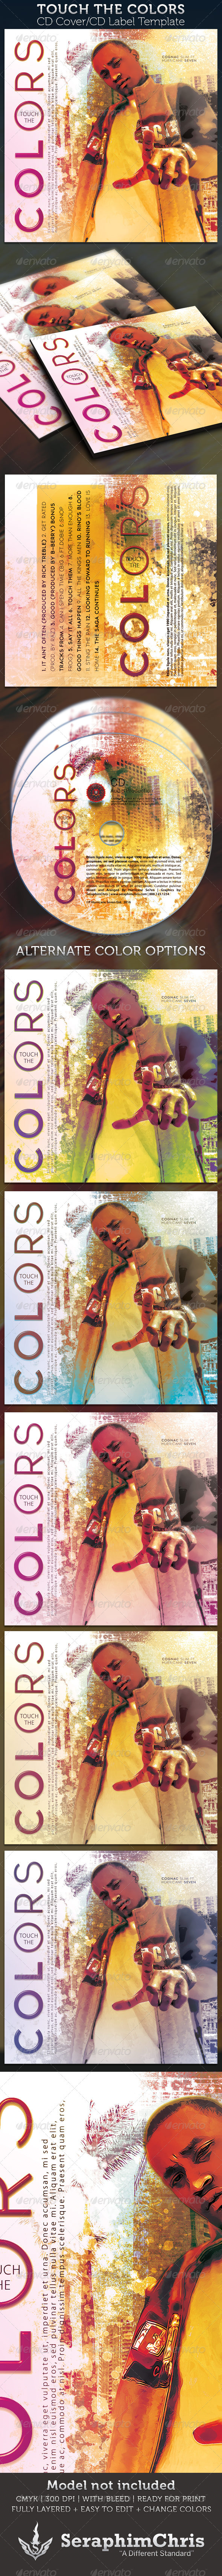 Touch The Colors CD Cover Artwork and Label - CD & DVD artwork Print Templates